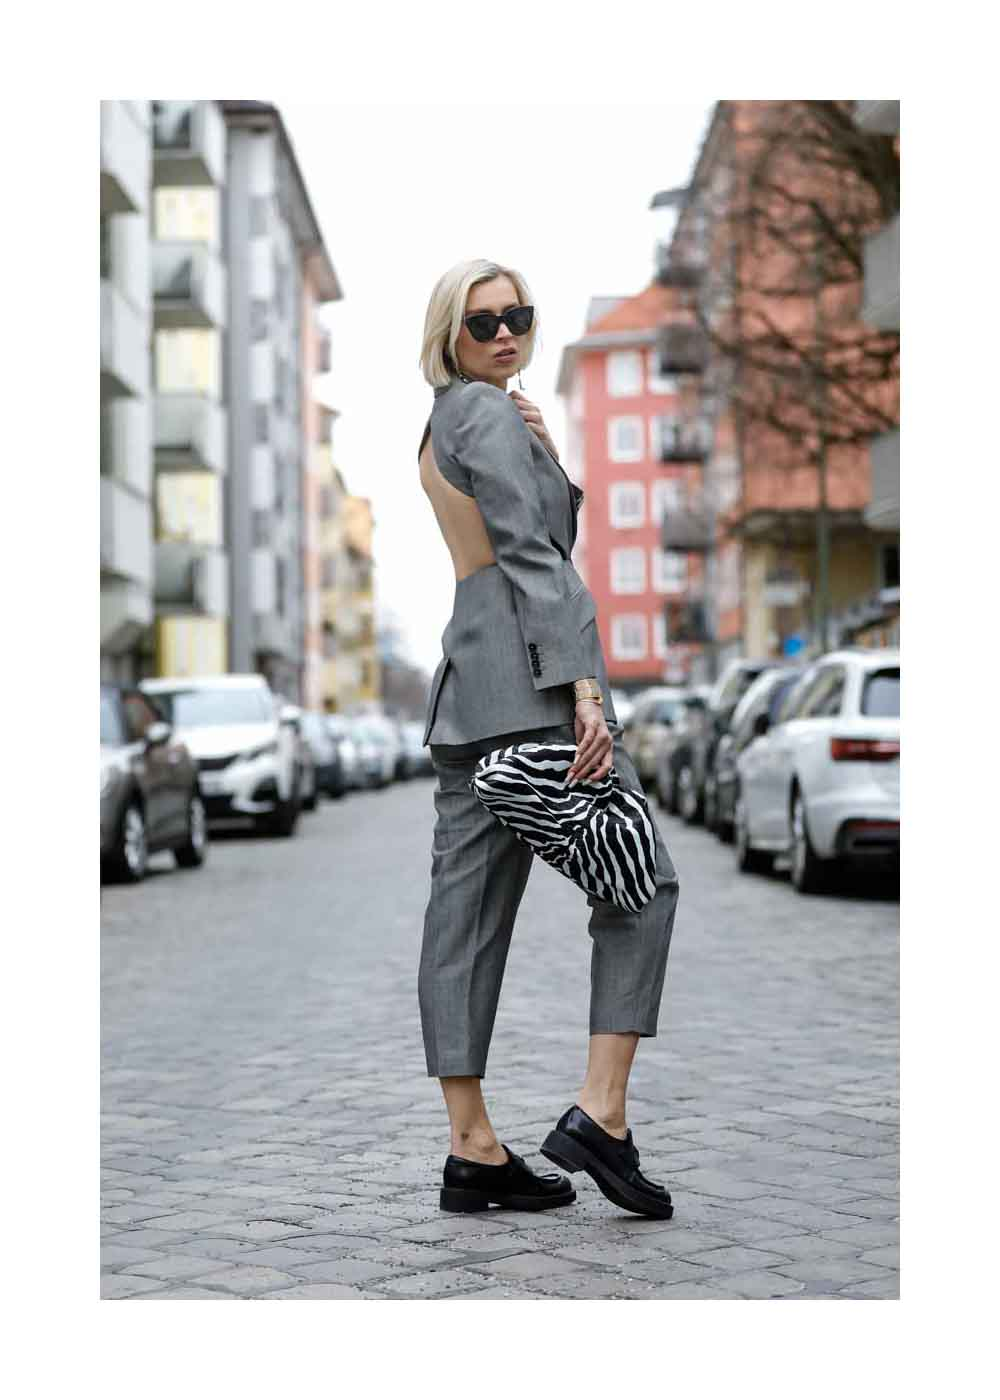 Streetstyle Shooting in Munich